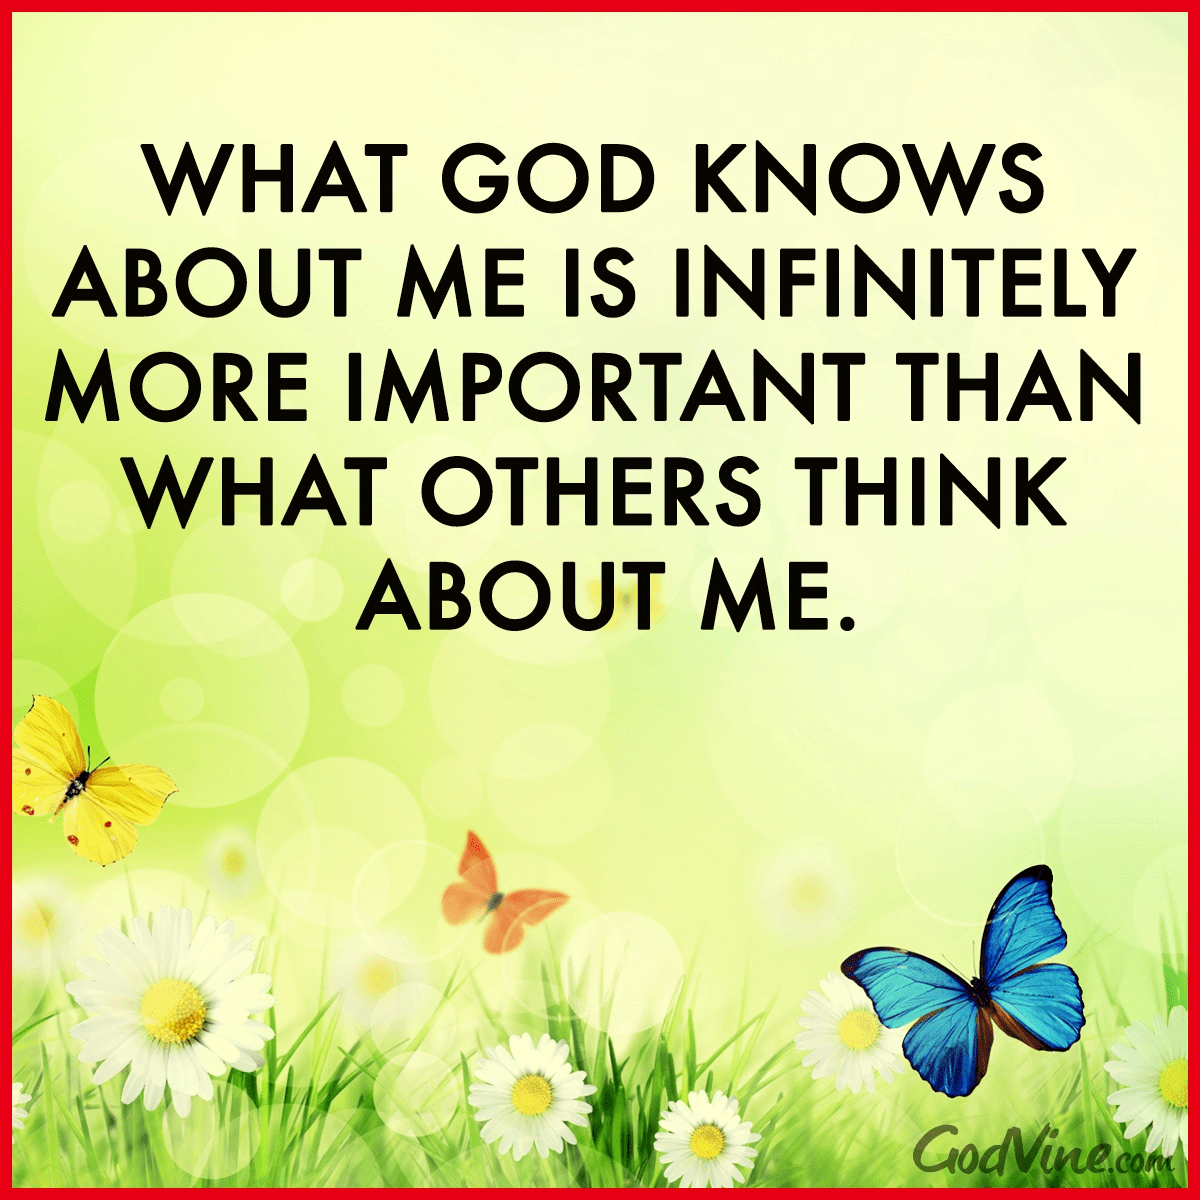 What God Knows About Me, What Others Think About Me